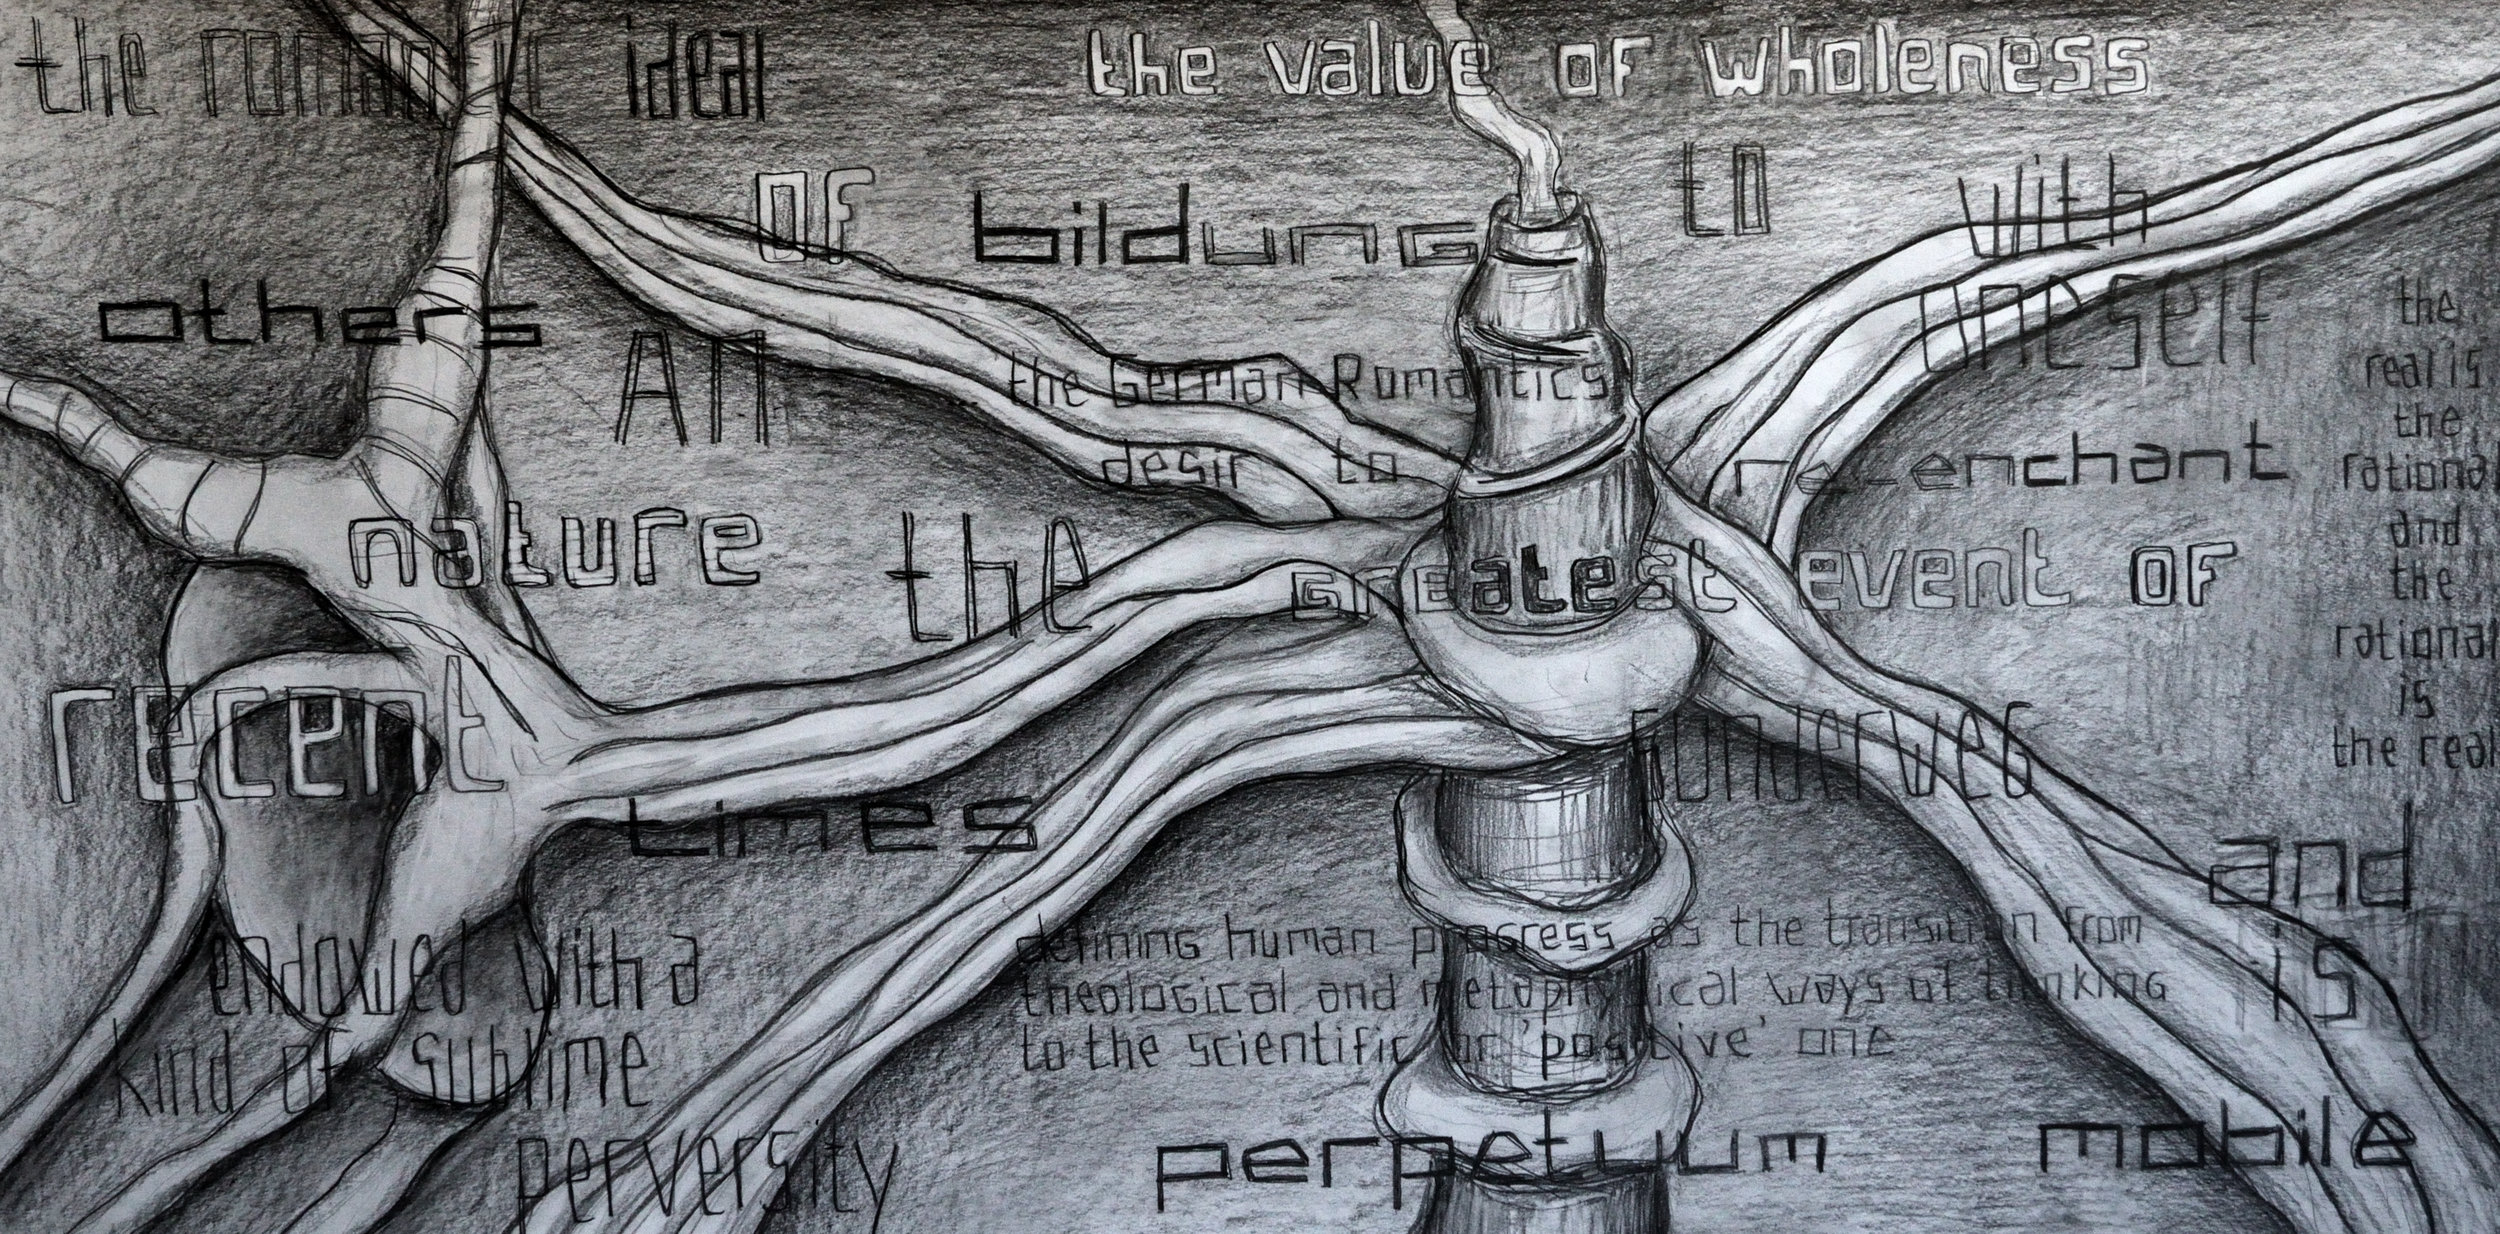 Endowed With a Kind of Sublime Romantic Wholeness, pencil on paper, 70x140cm